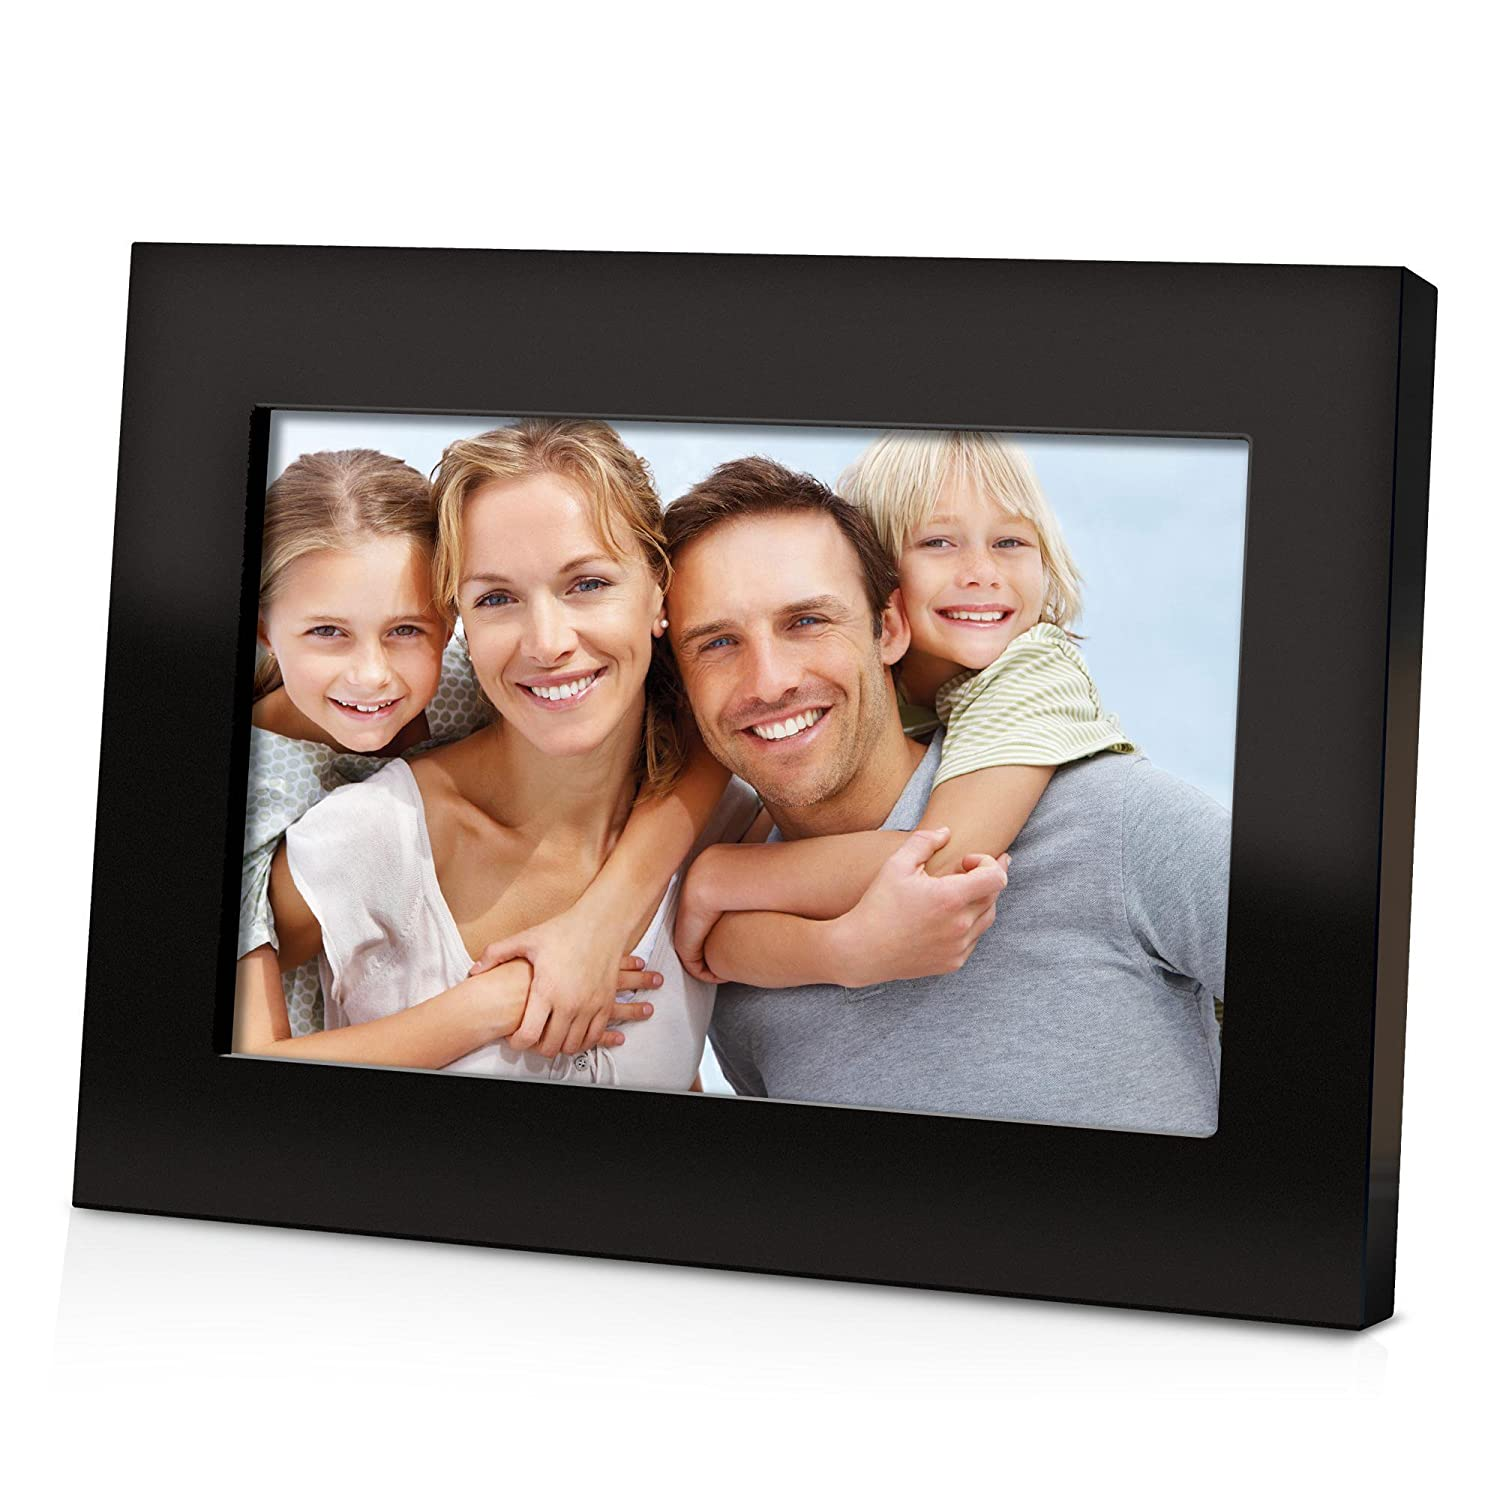 Amazon.com : Coby DP700BLK 7-Inch Digital Picture Frame -Black ...